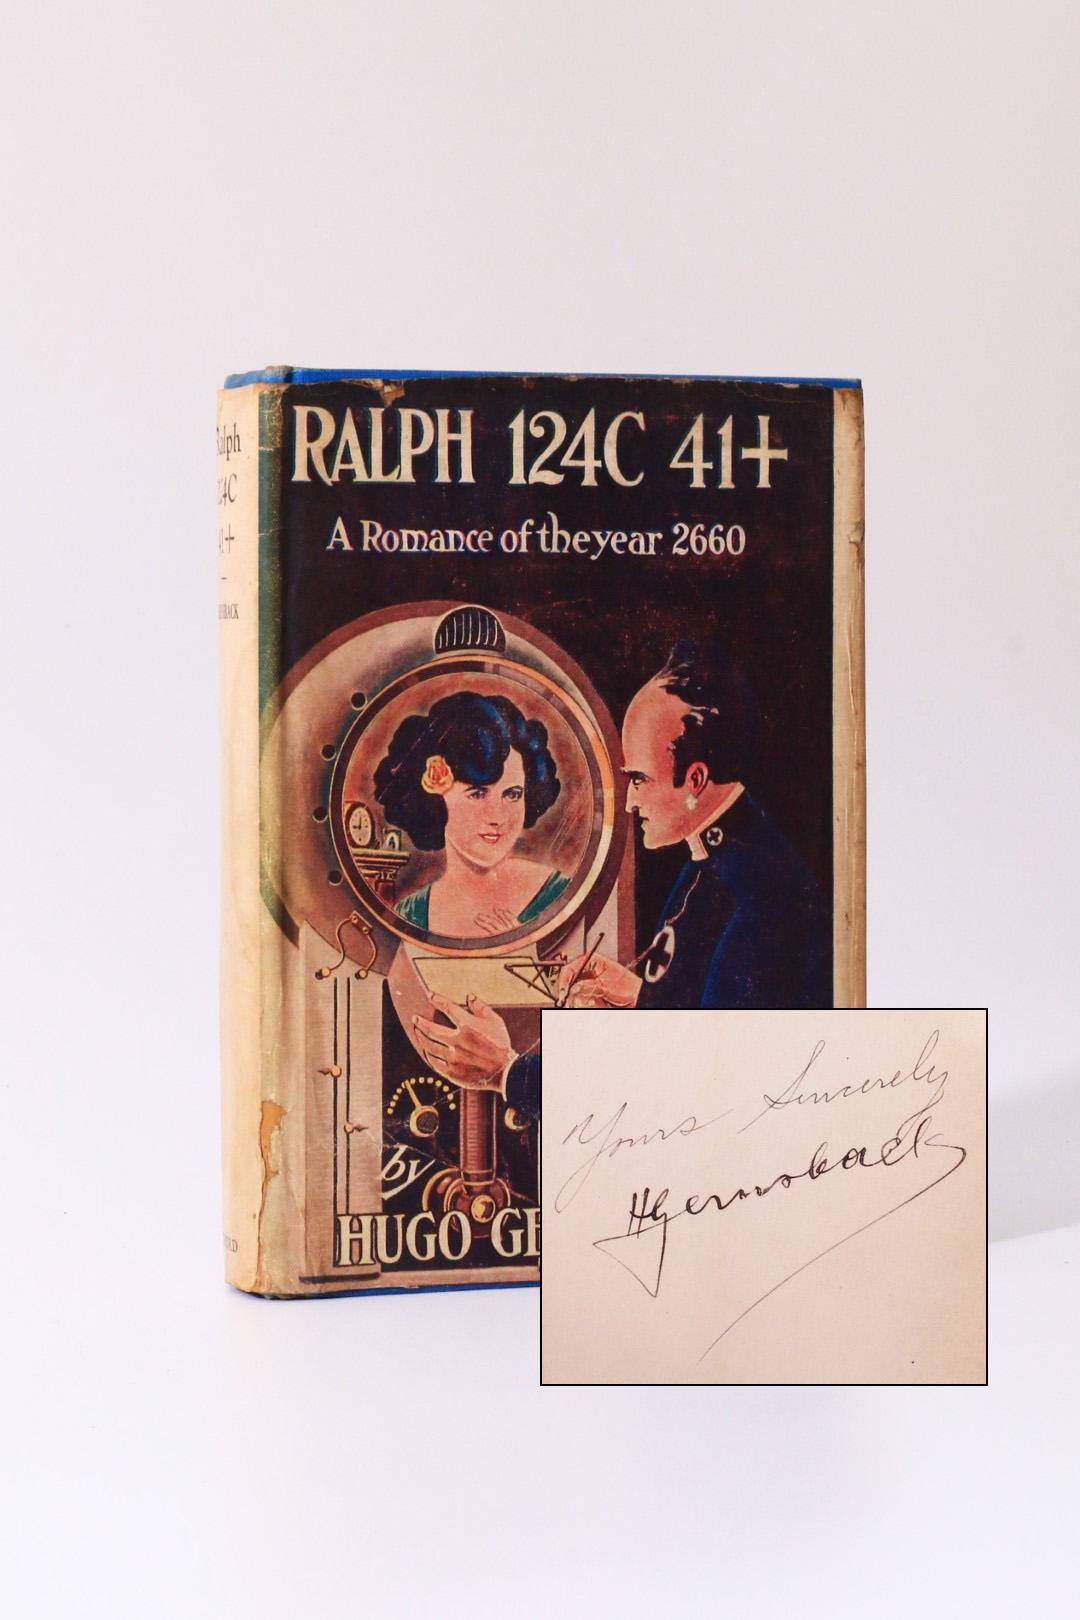 Hugo Gernsback - Ralph 124c 41+ - The Stratford Company, 1925, Signed First Edition.